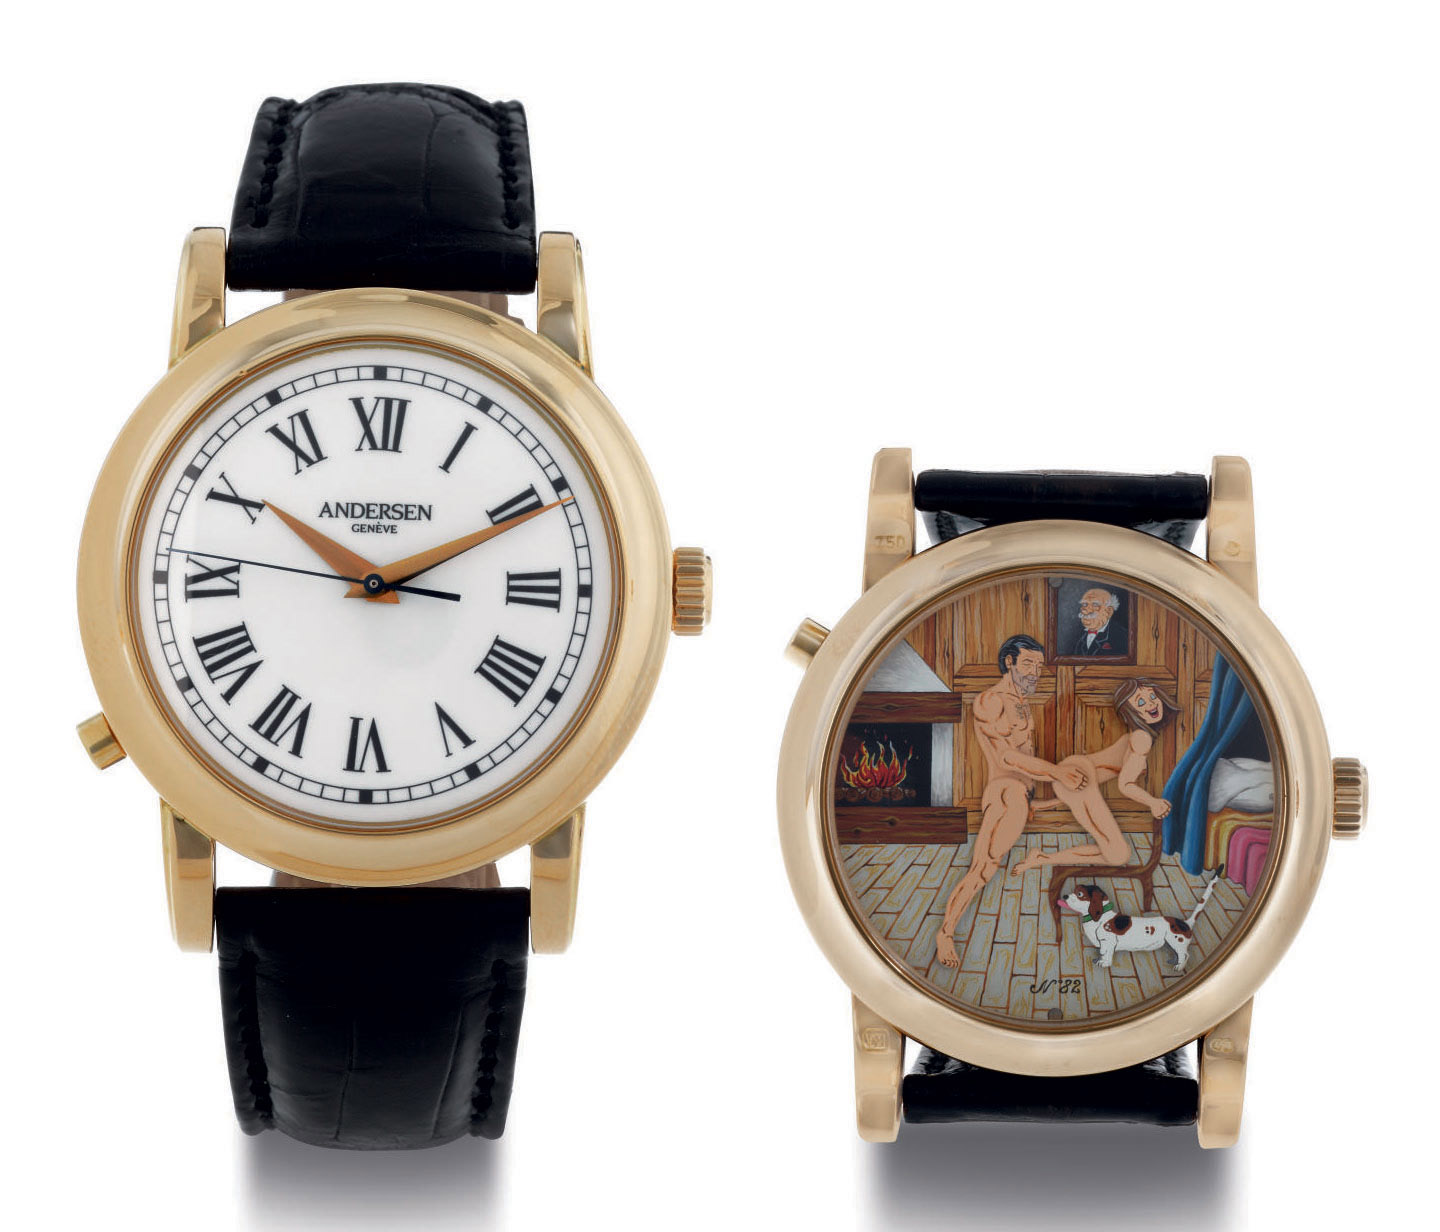 SVEND ANDERSEN. A FINE 18K GOLD WRISTWATCH WITH CENTER SECONDS AND CONCEALED EROTIC AUTOMATON